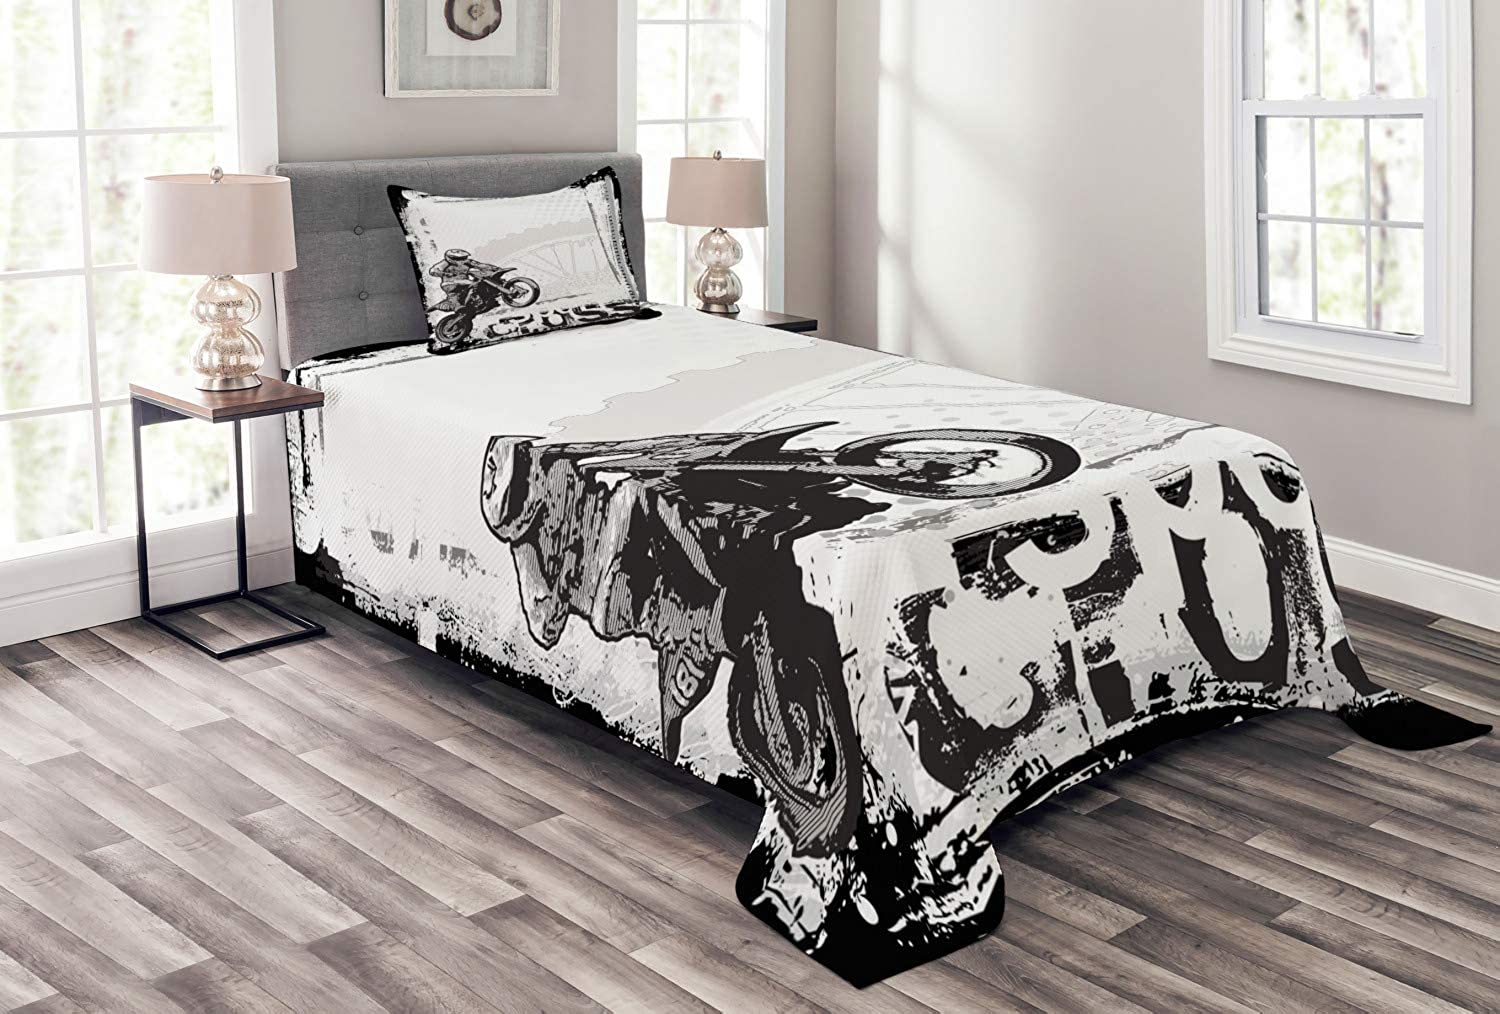 Ambesonne Motorcycle Bedspread Set Twin Size, Motocross Racer Image Grungy Background Poster Style Monochromic Artwork Print, 2 Piece Decorative Quilted Coverlet with 1 Pillow Sham, Black White